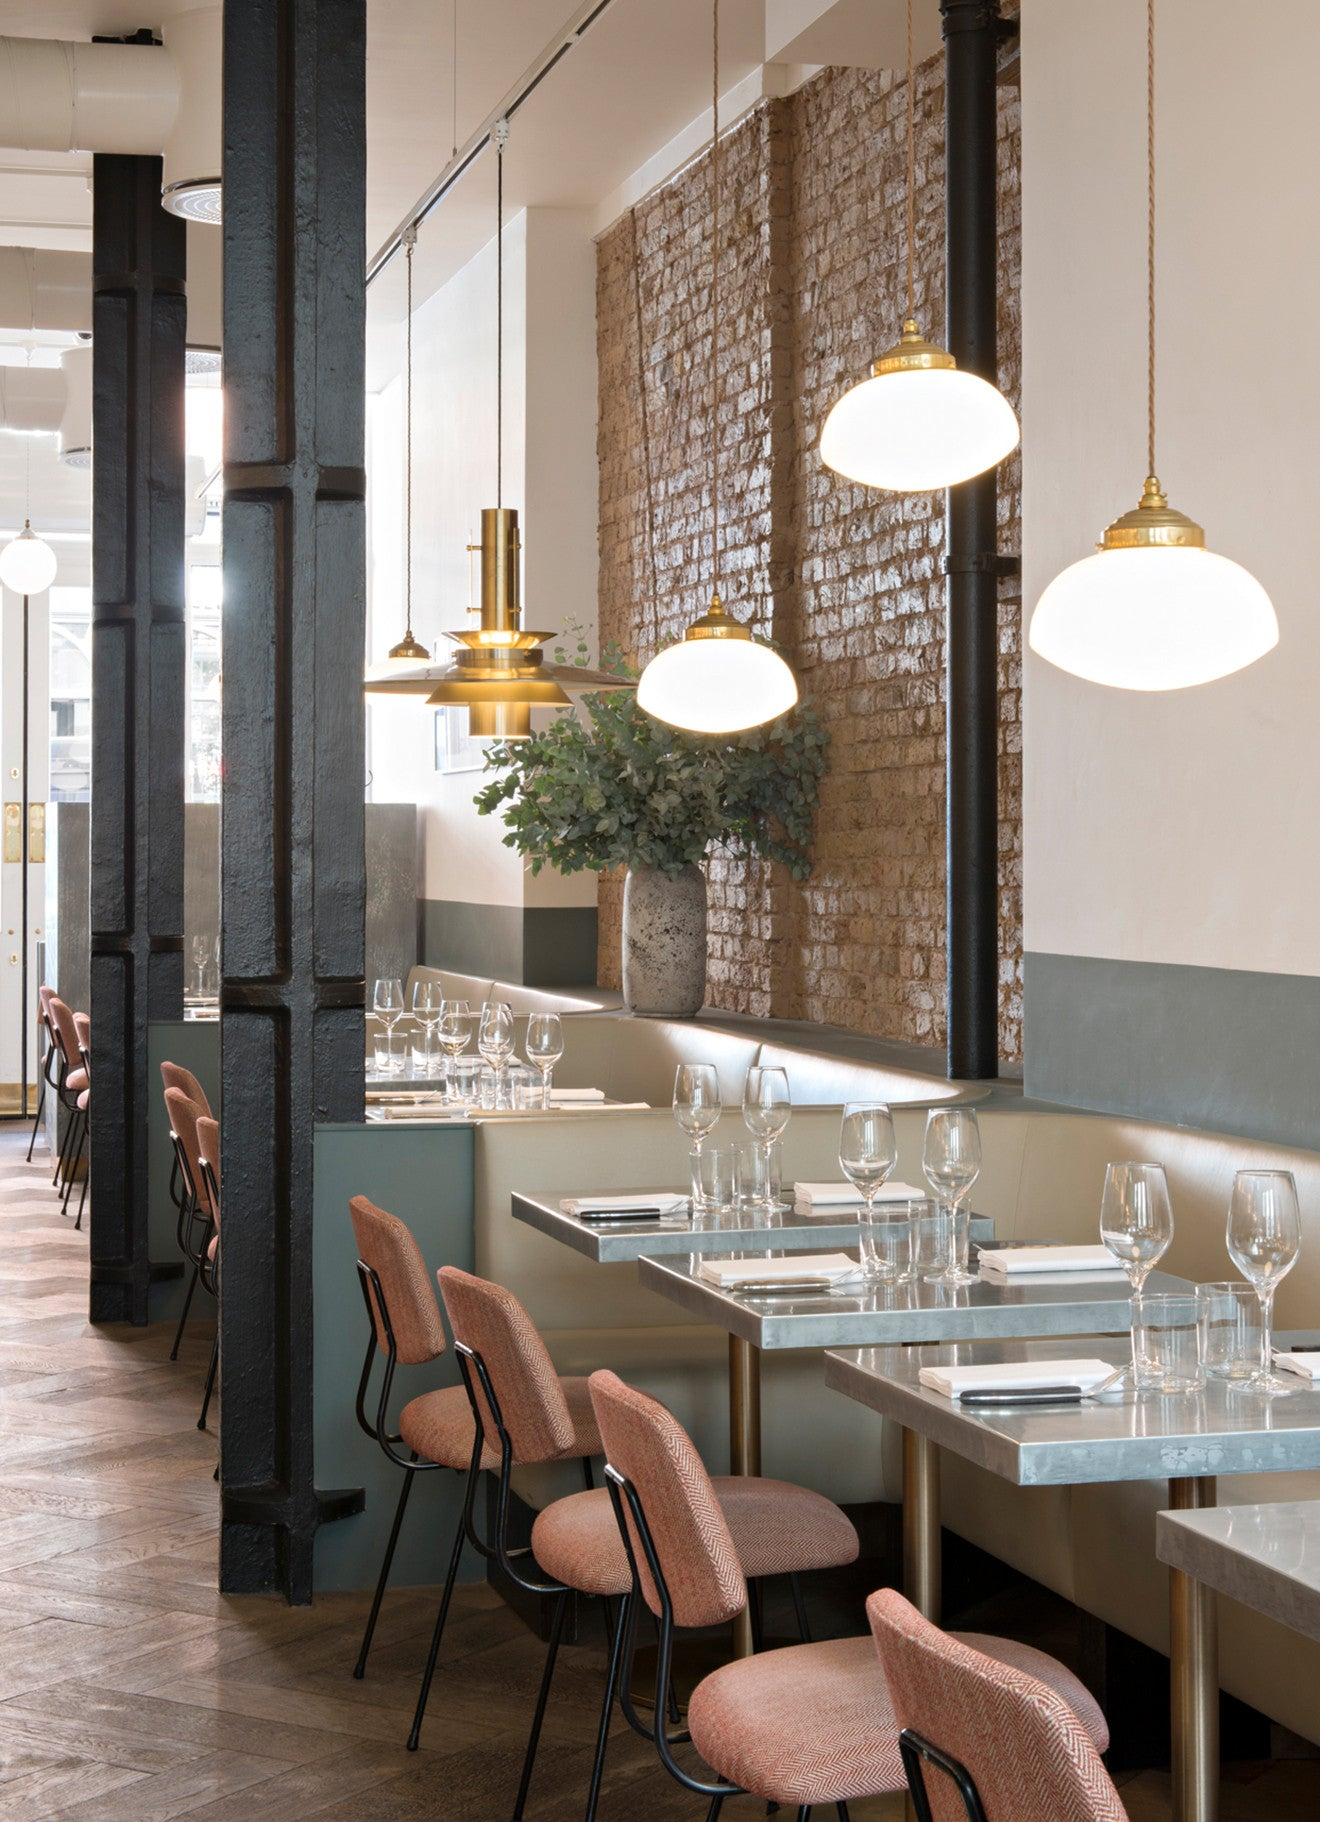 Beautiful brass and glass pendant lighting at Frenchie restaurant, Covent Garden